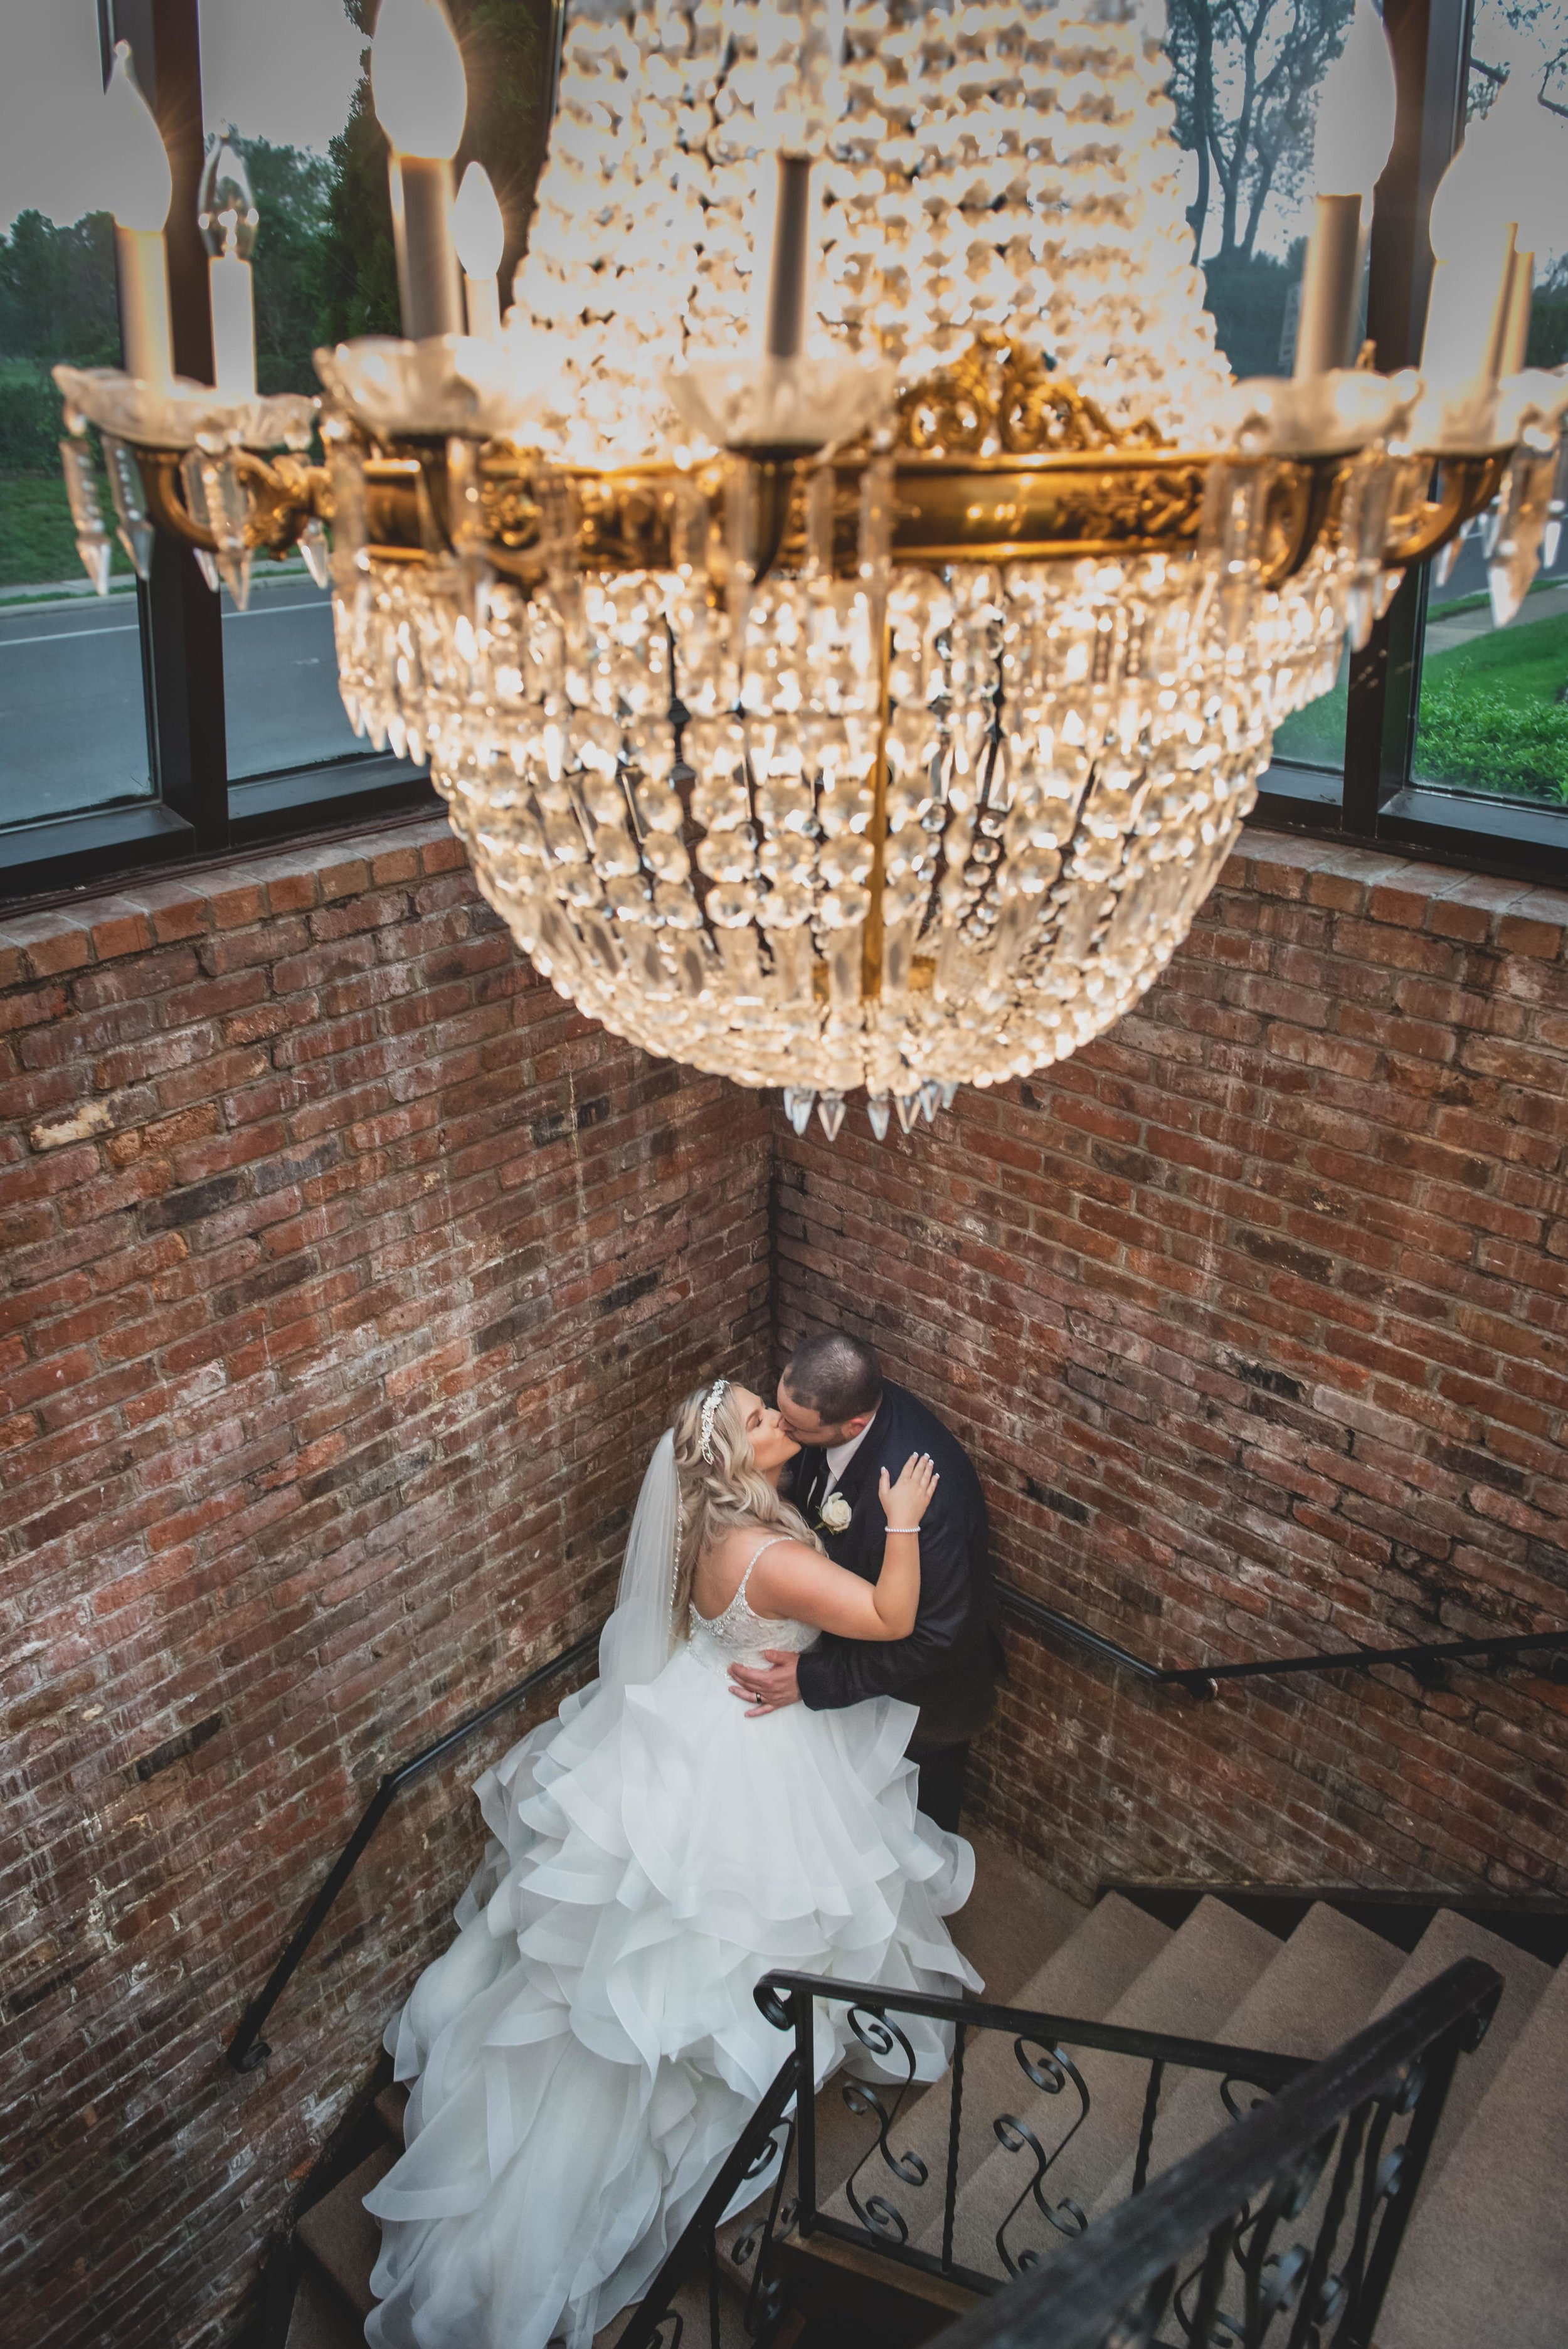 Bride and groom kissing under an extravagant chandelier.